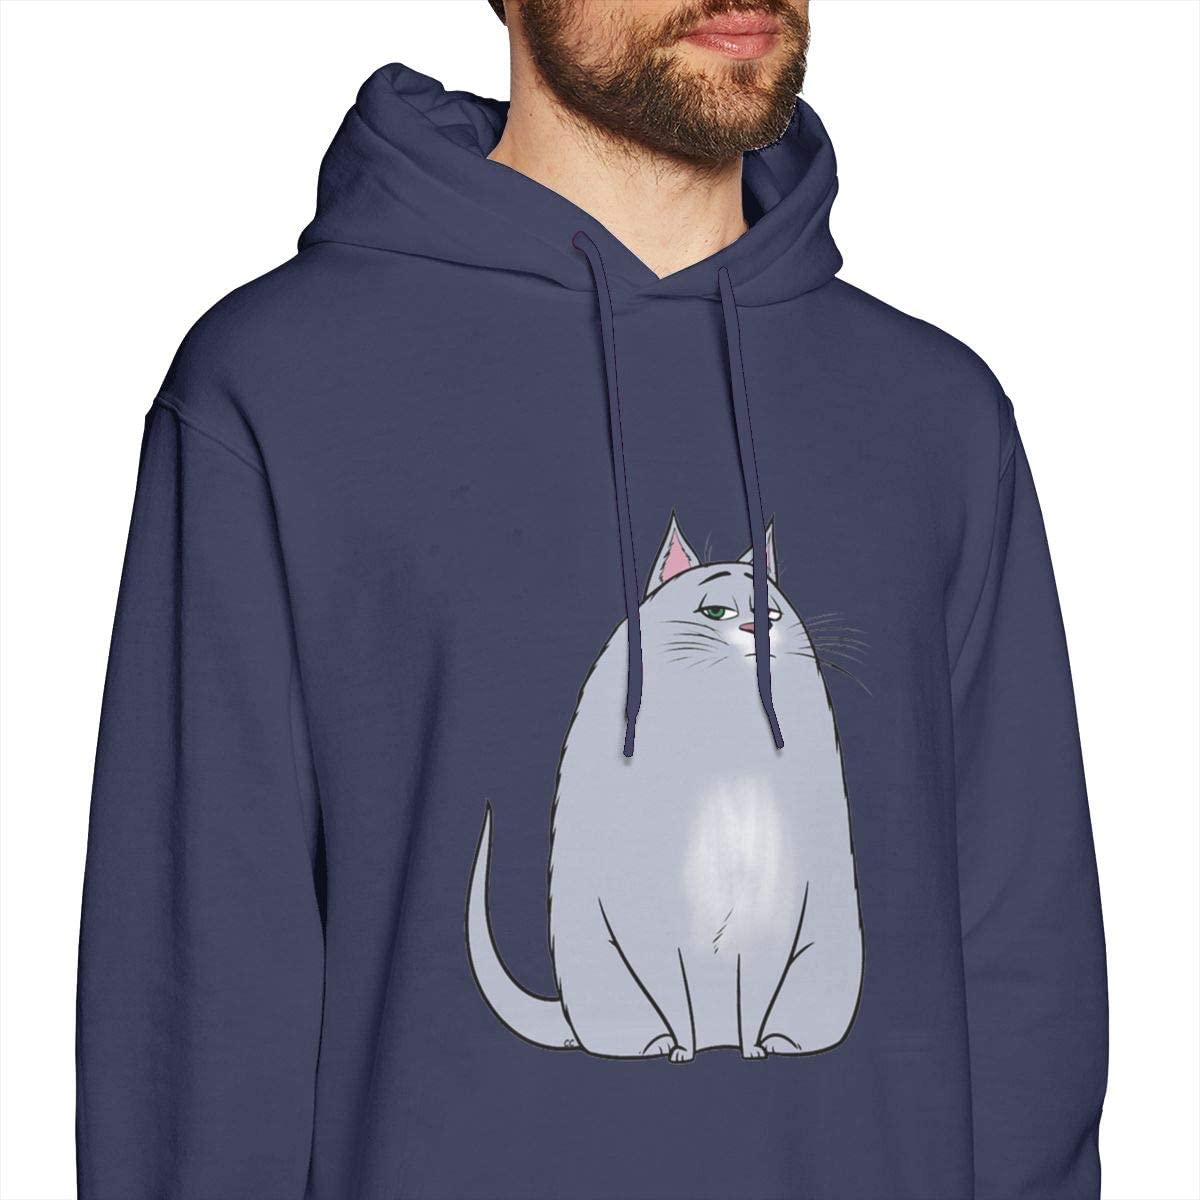 Zhenzhan Male Gidget Cat Classic Pullover Printed Hooded Shirts in 7 Colors